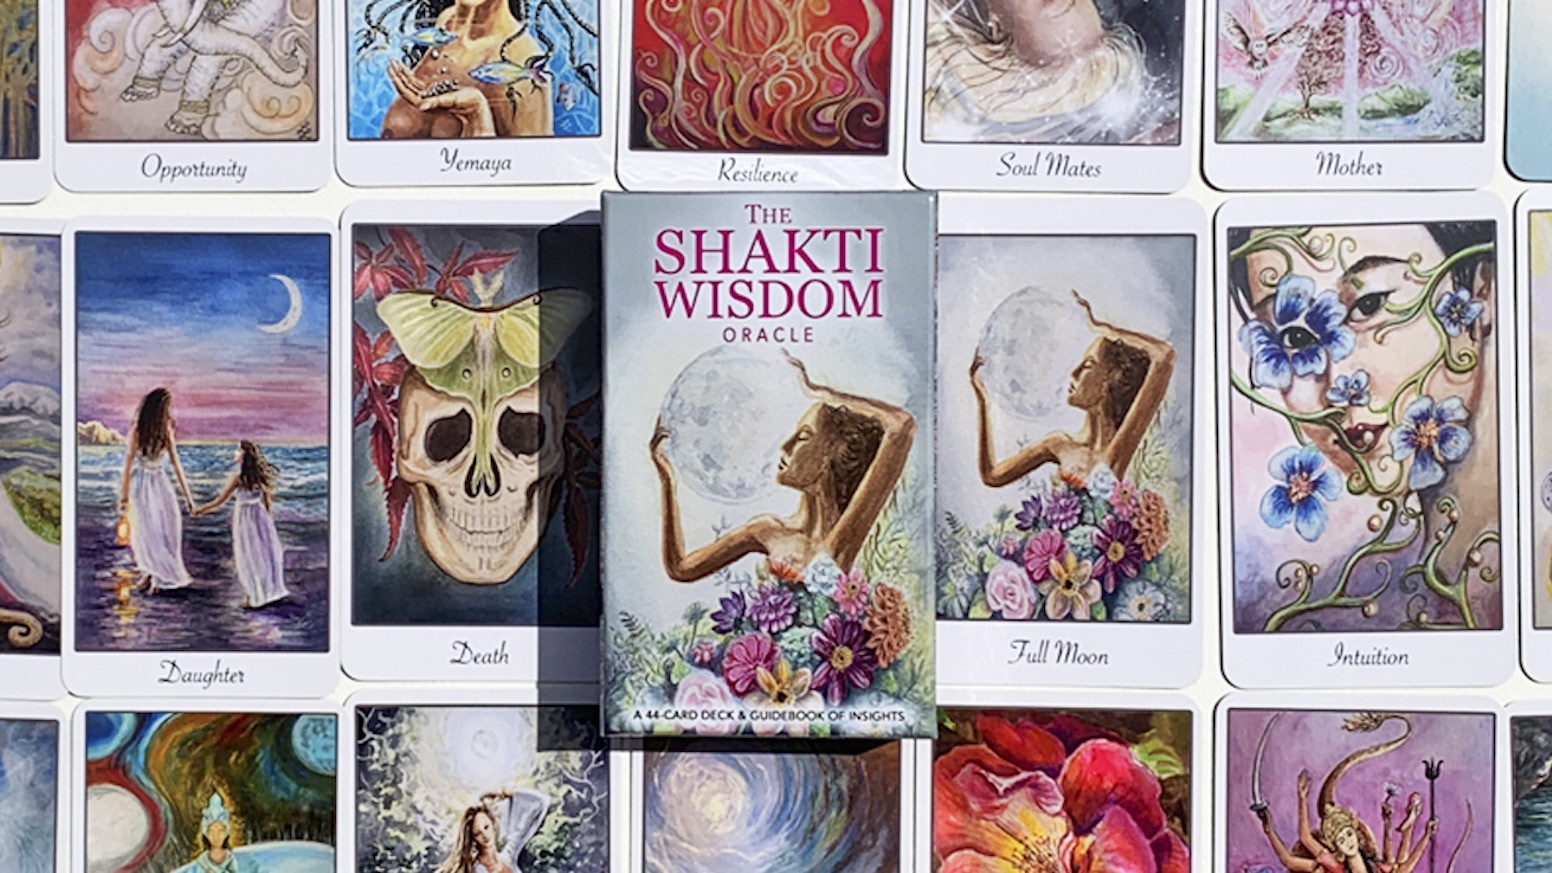 The Shakti Wisdom Oracle deck features beautiful imagery with affirmations to empower women.